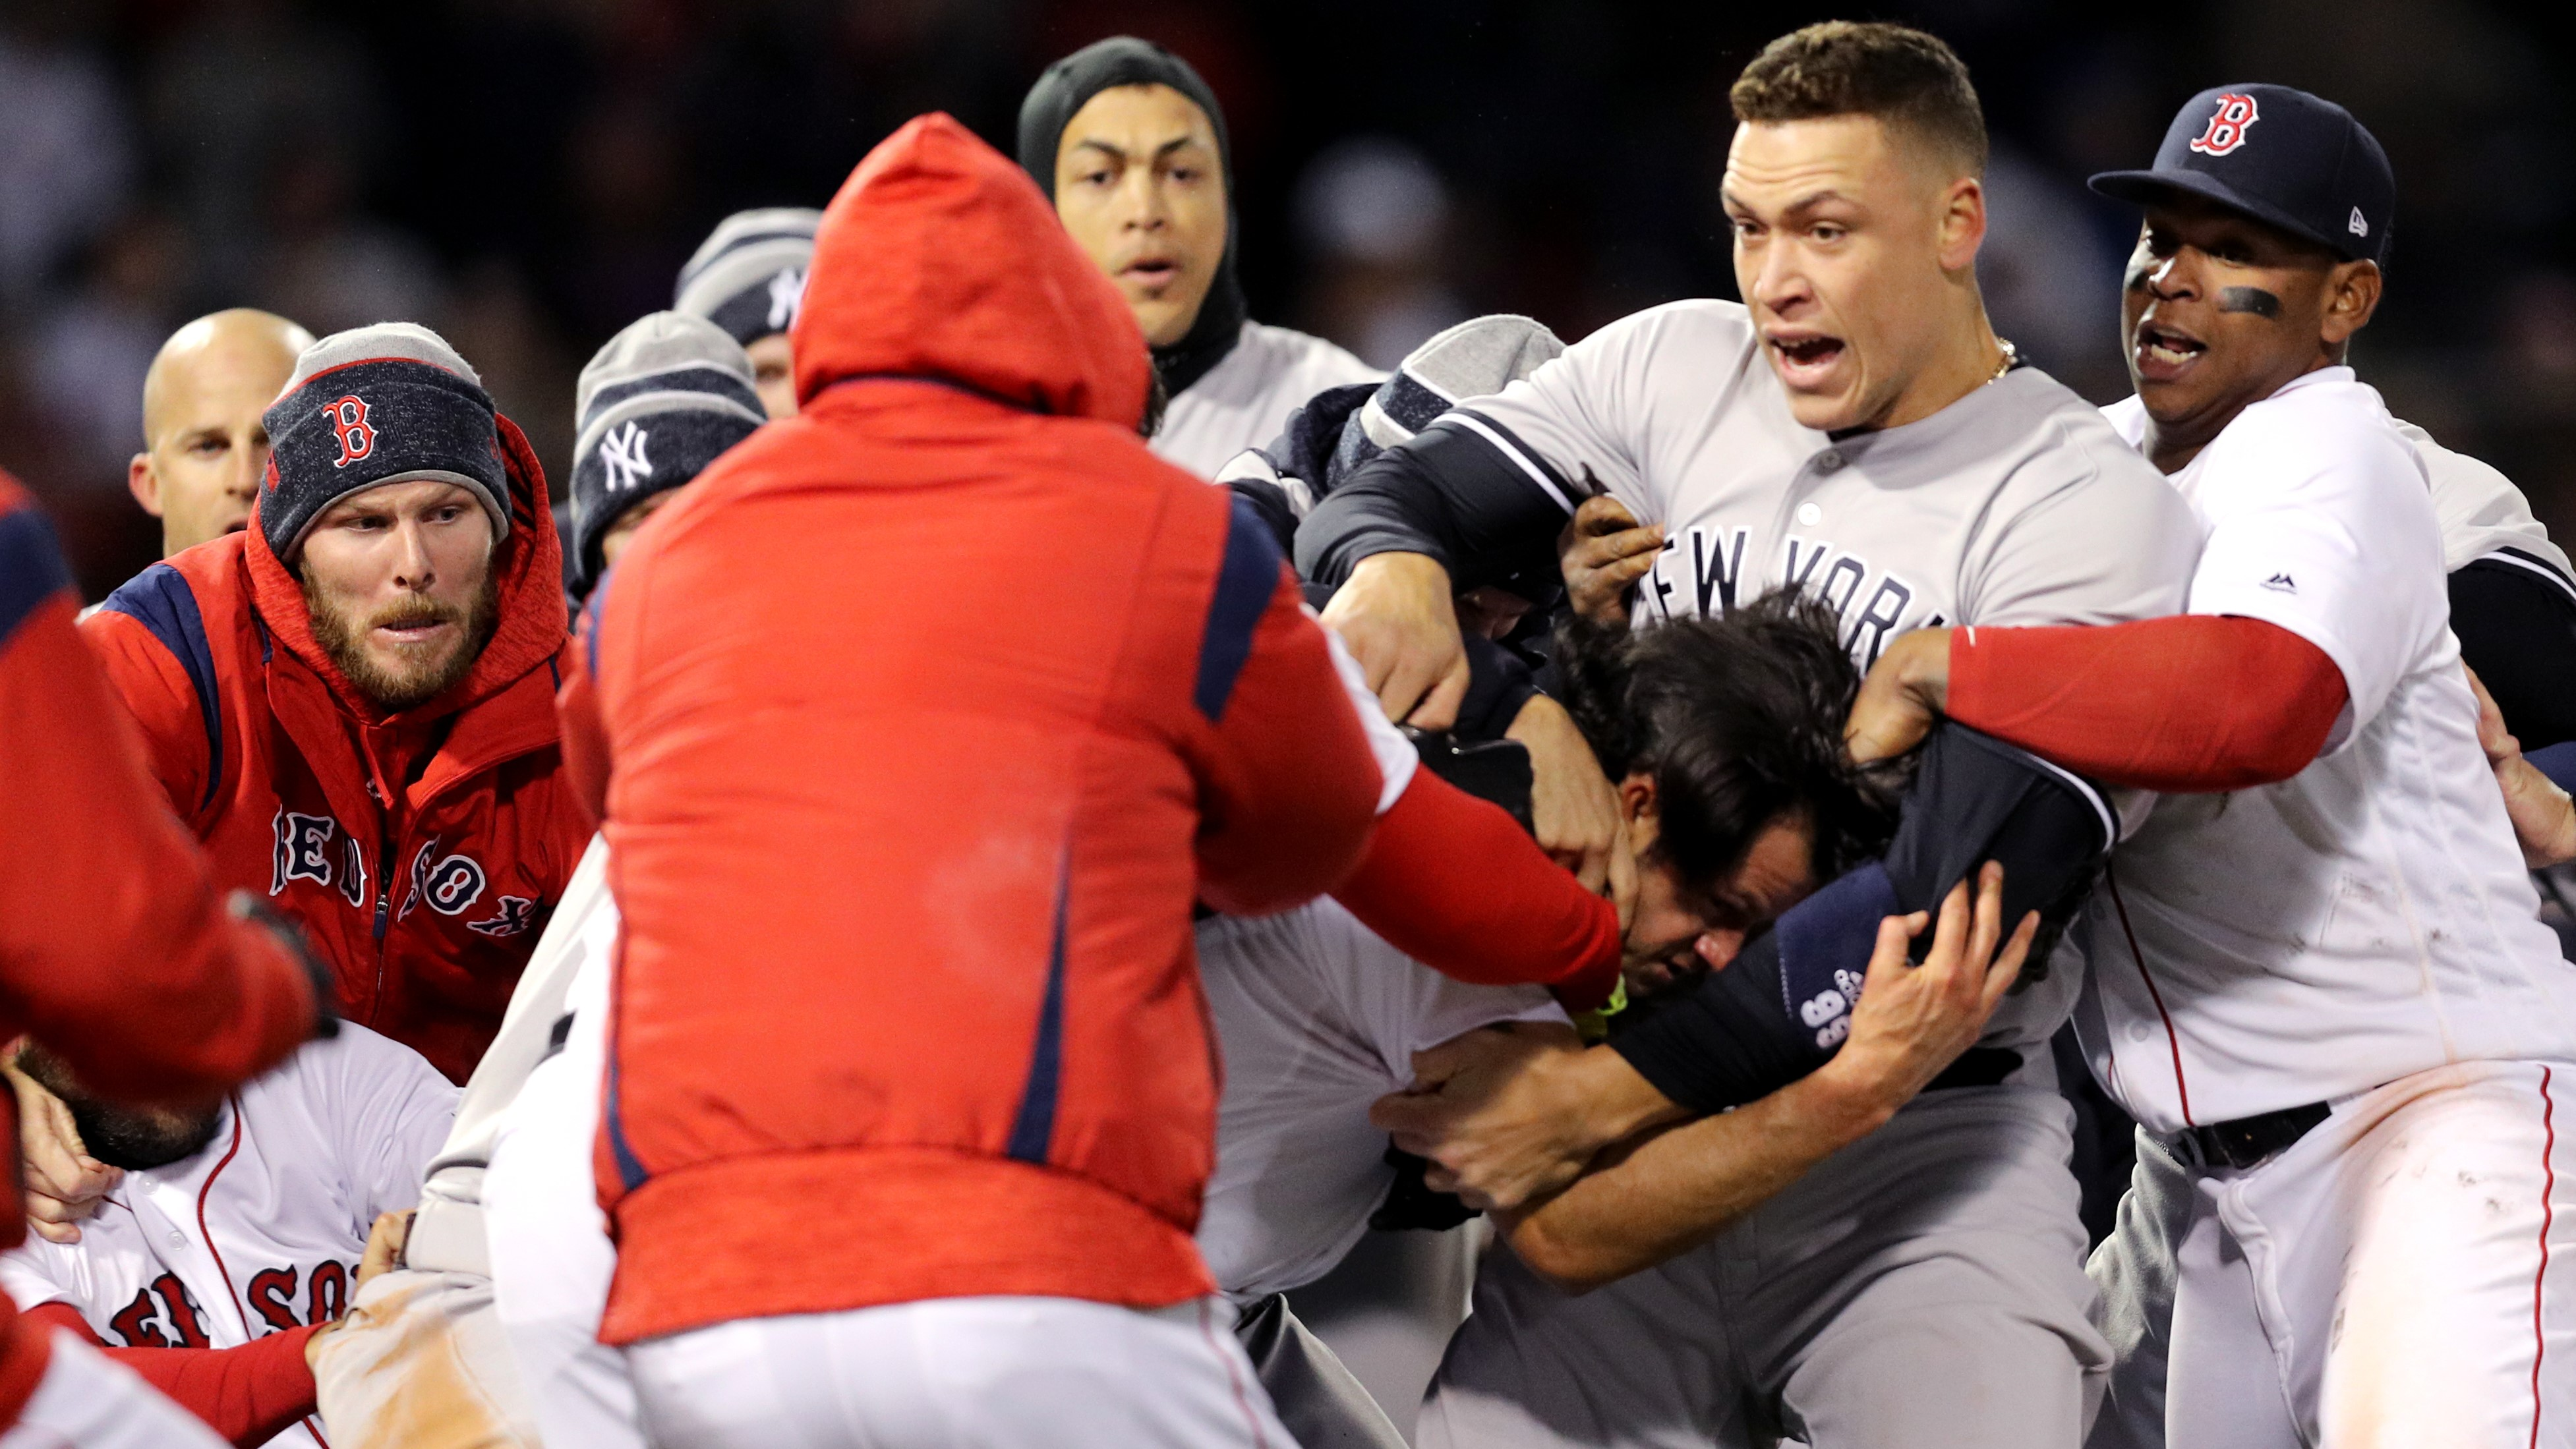 Red Sox vs Yankees live stream: how to watch MLB's biggest rivalry from anywhere thumbnail